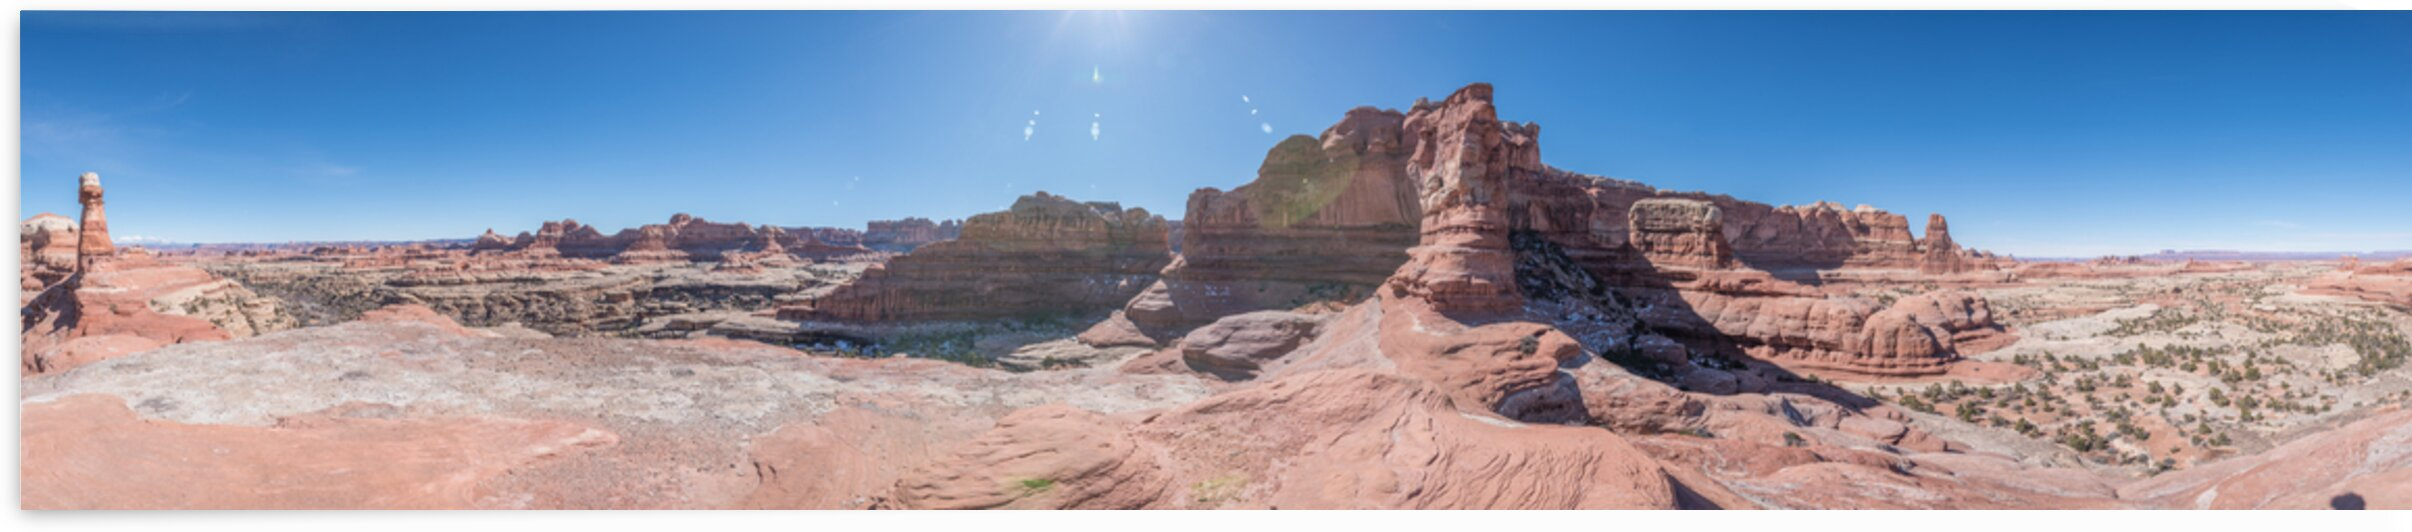 DSC 2055 Pano by Nick Welch